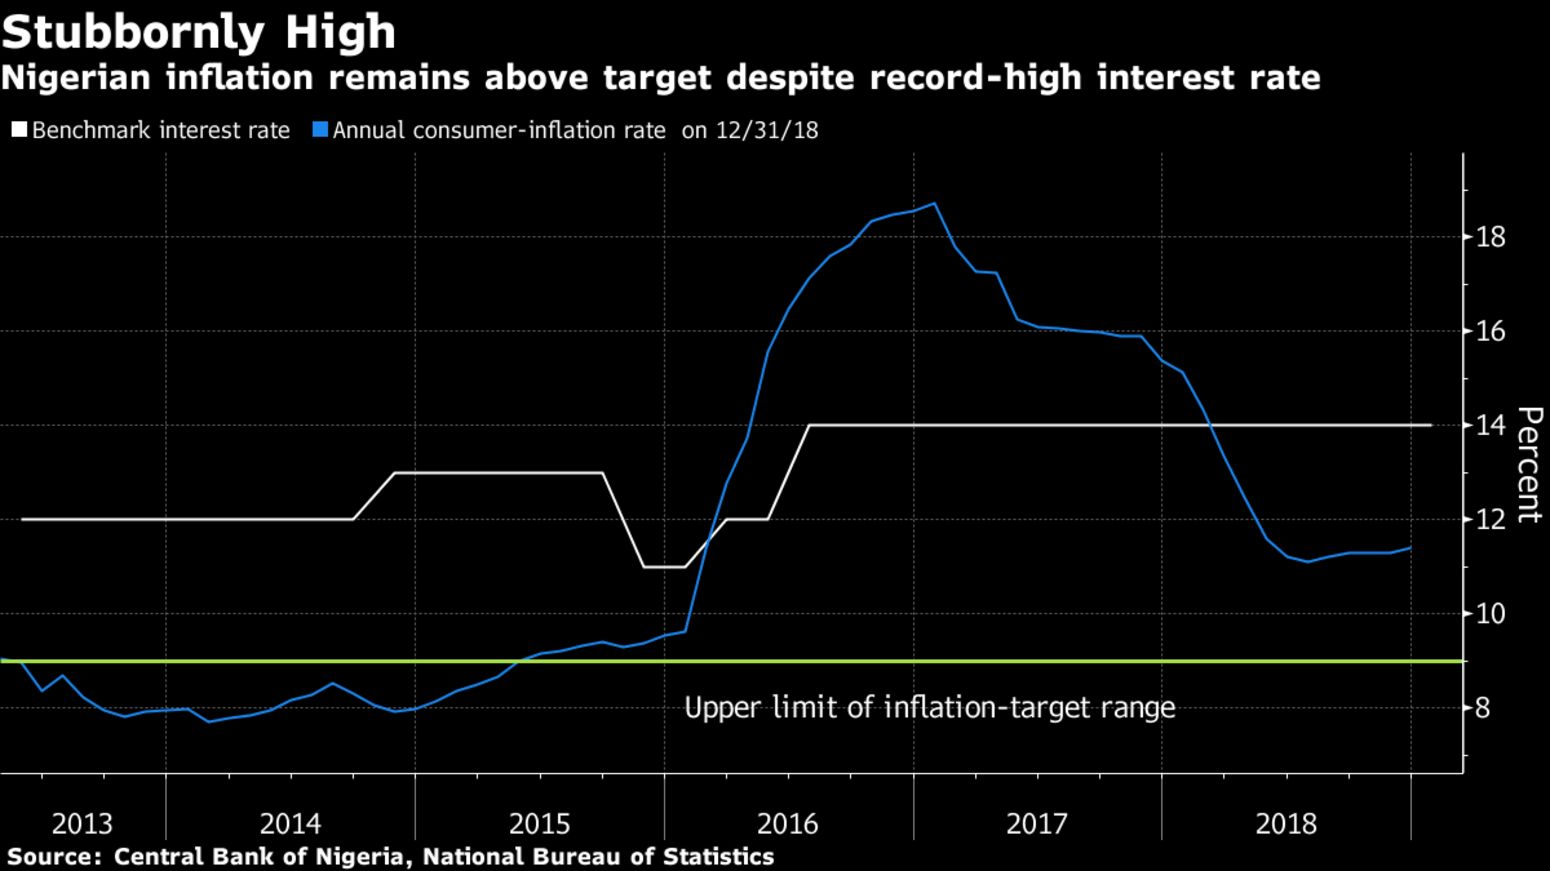 Nigerian inflation remains above target despite record-high interest rate